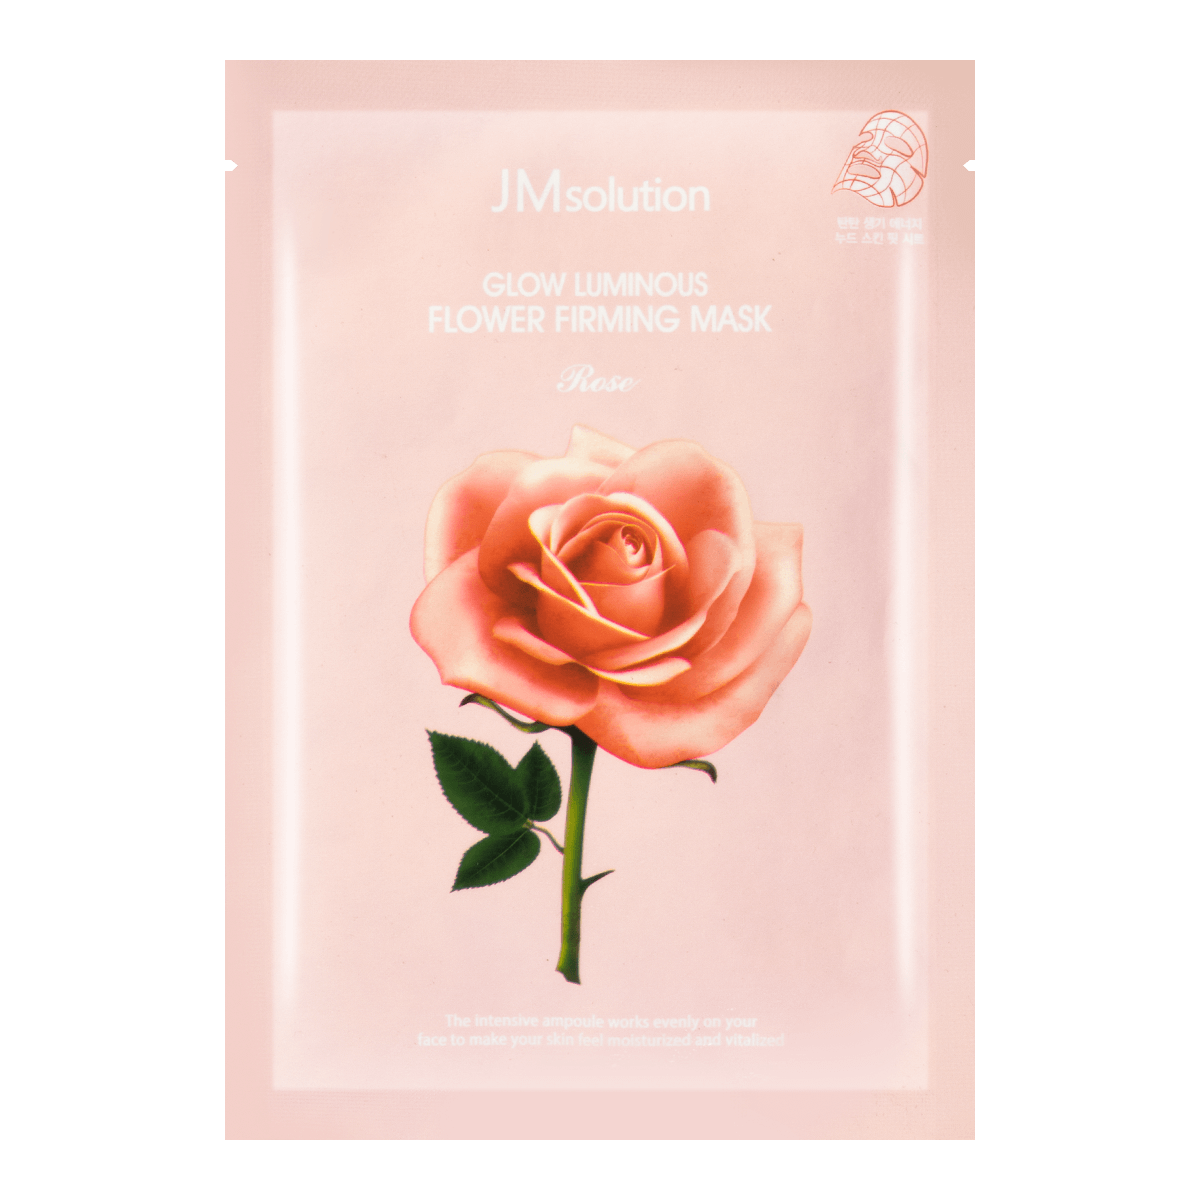 JM SOLUTION Glow Luminous Rose Flower Firming Mask 1 sheet